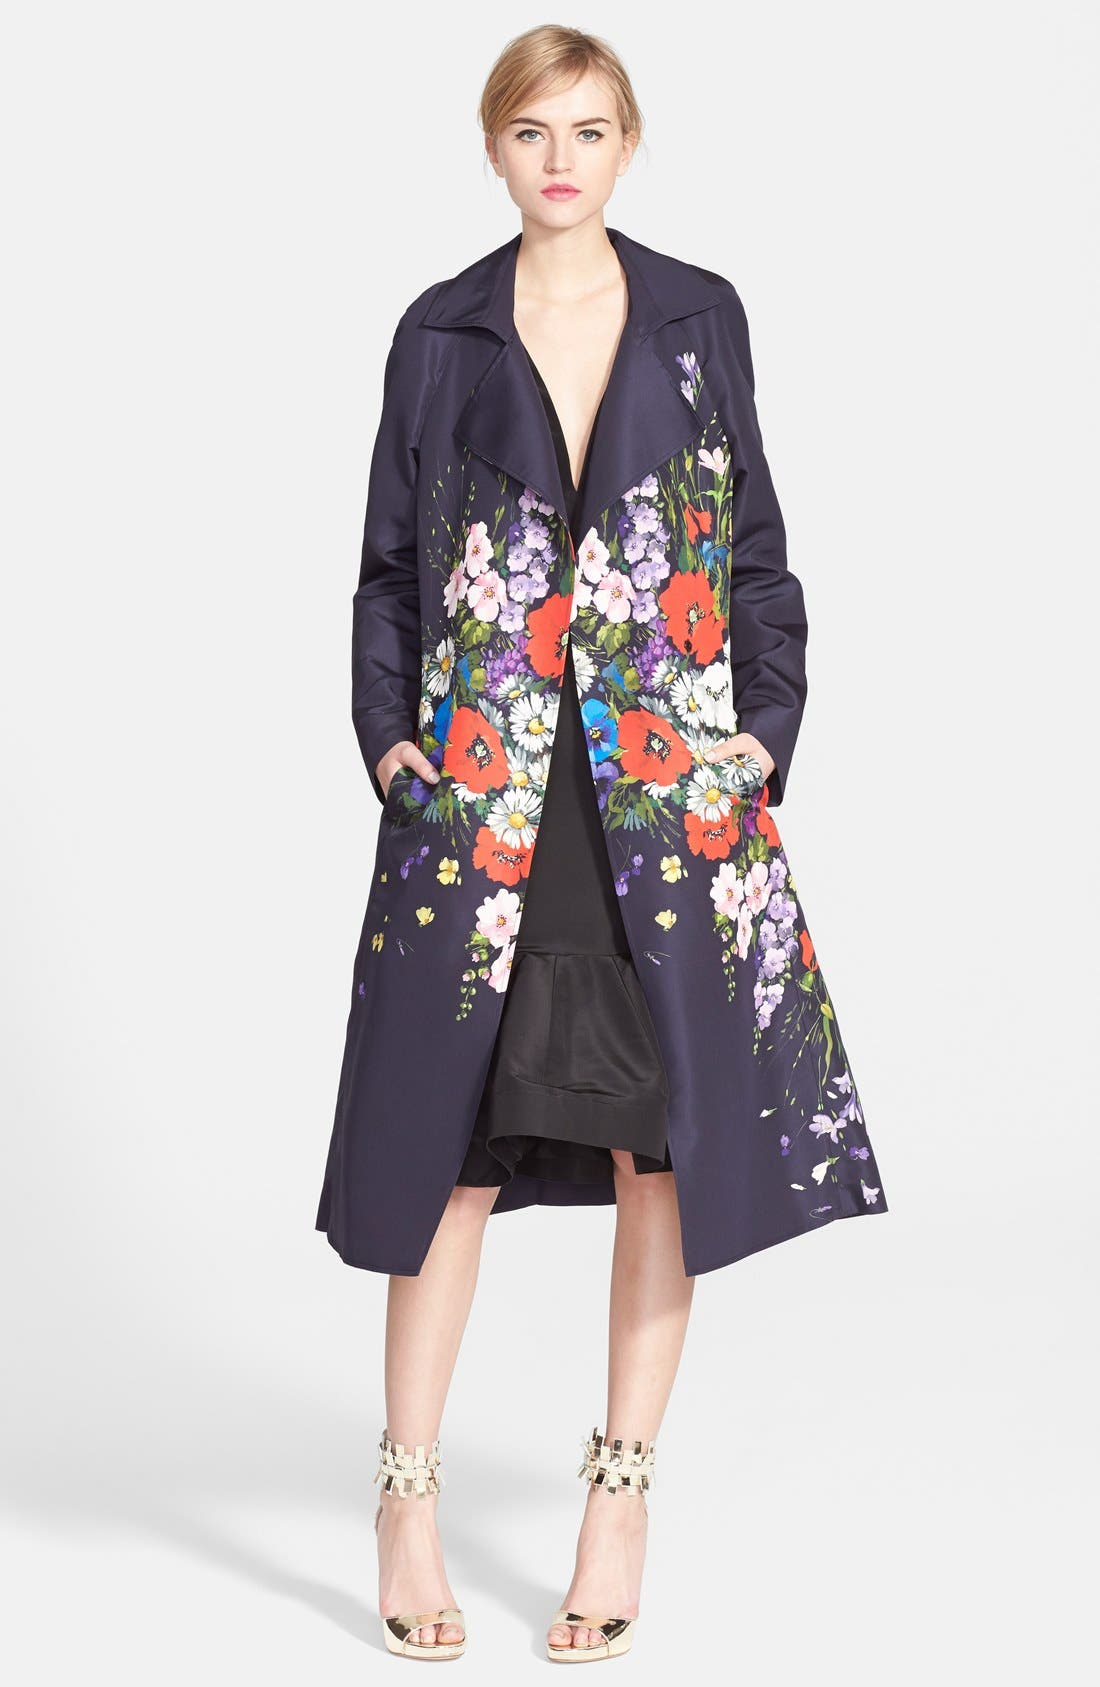 Alternate Image 1 Selected - Oscar de la Renta Floral Print Silk Faille Trench Coat